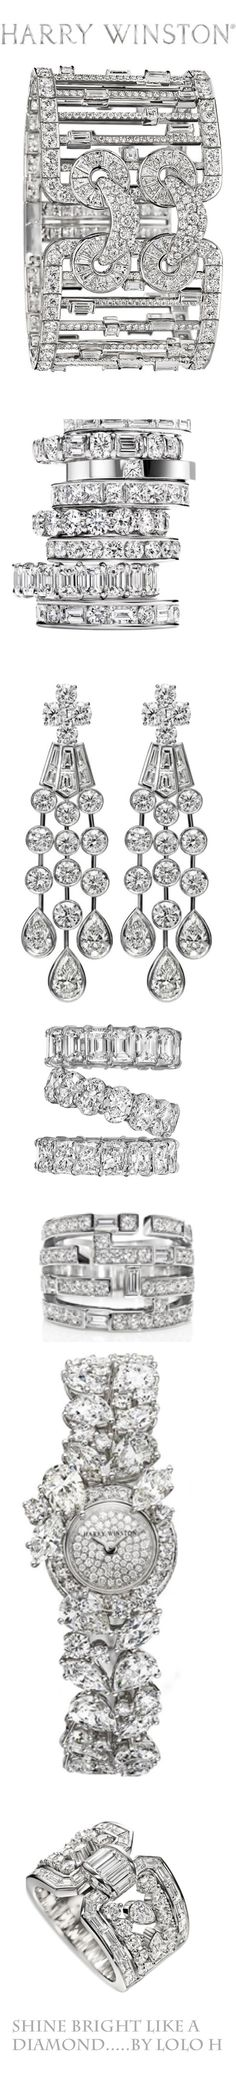 Jewels: shining bright like a diamond. Harry Winston diamonds of course!..